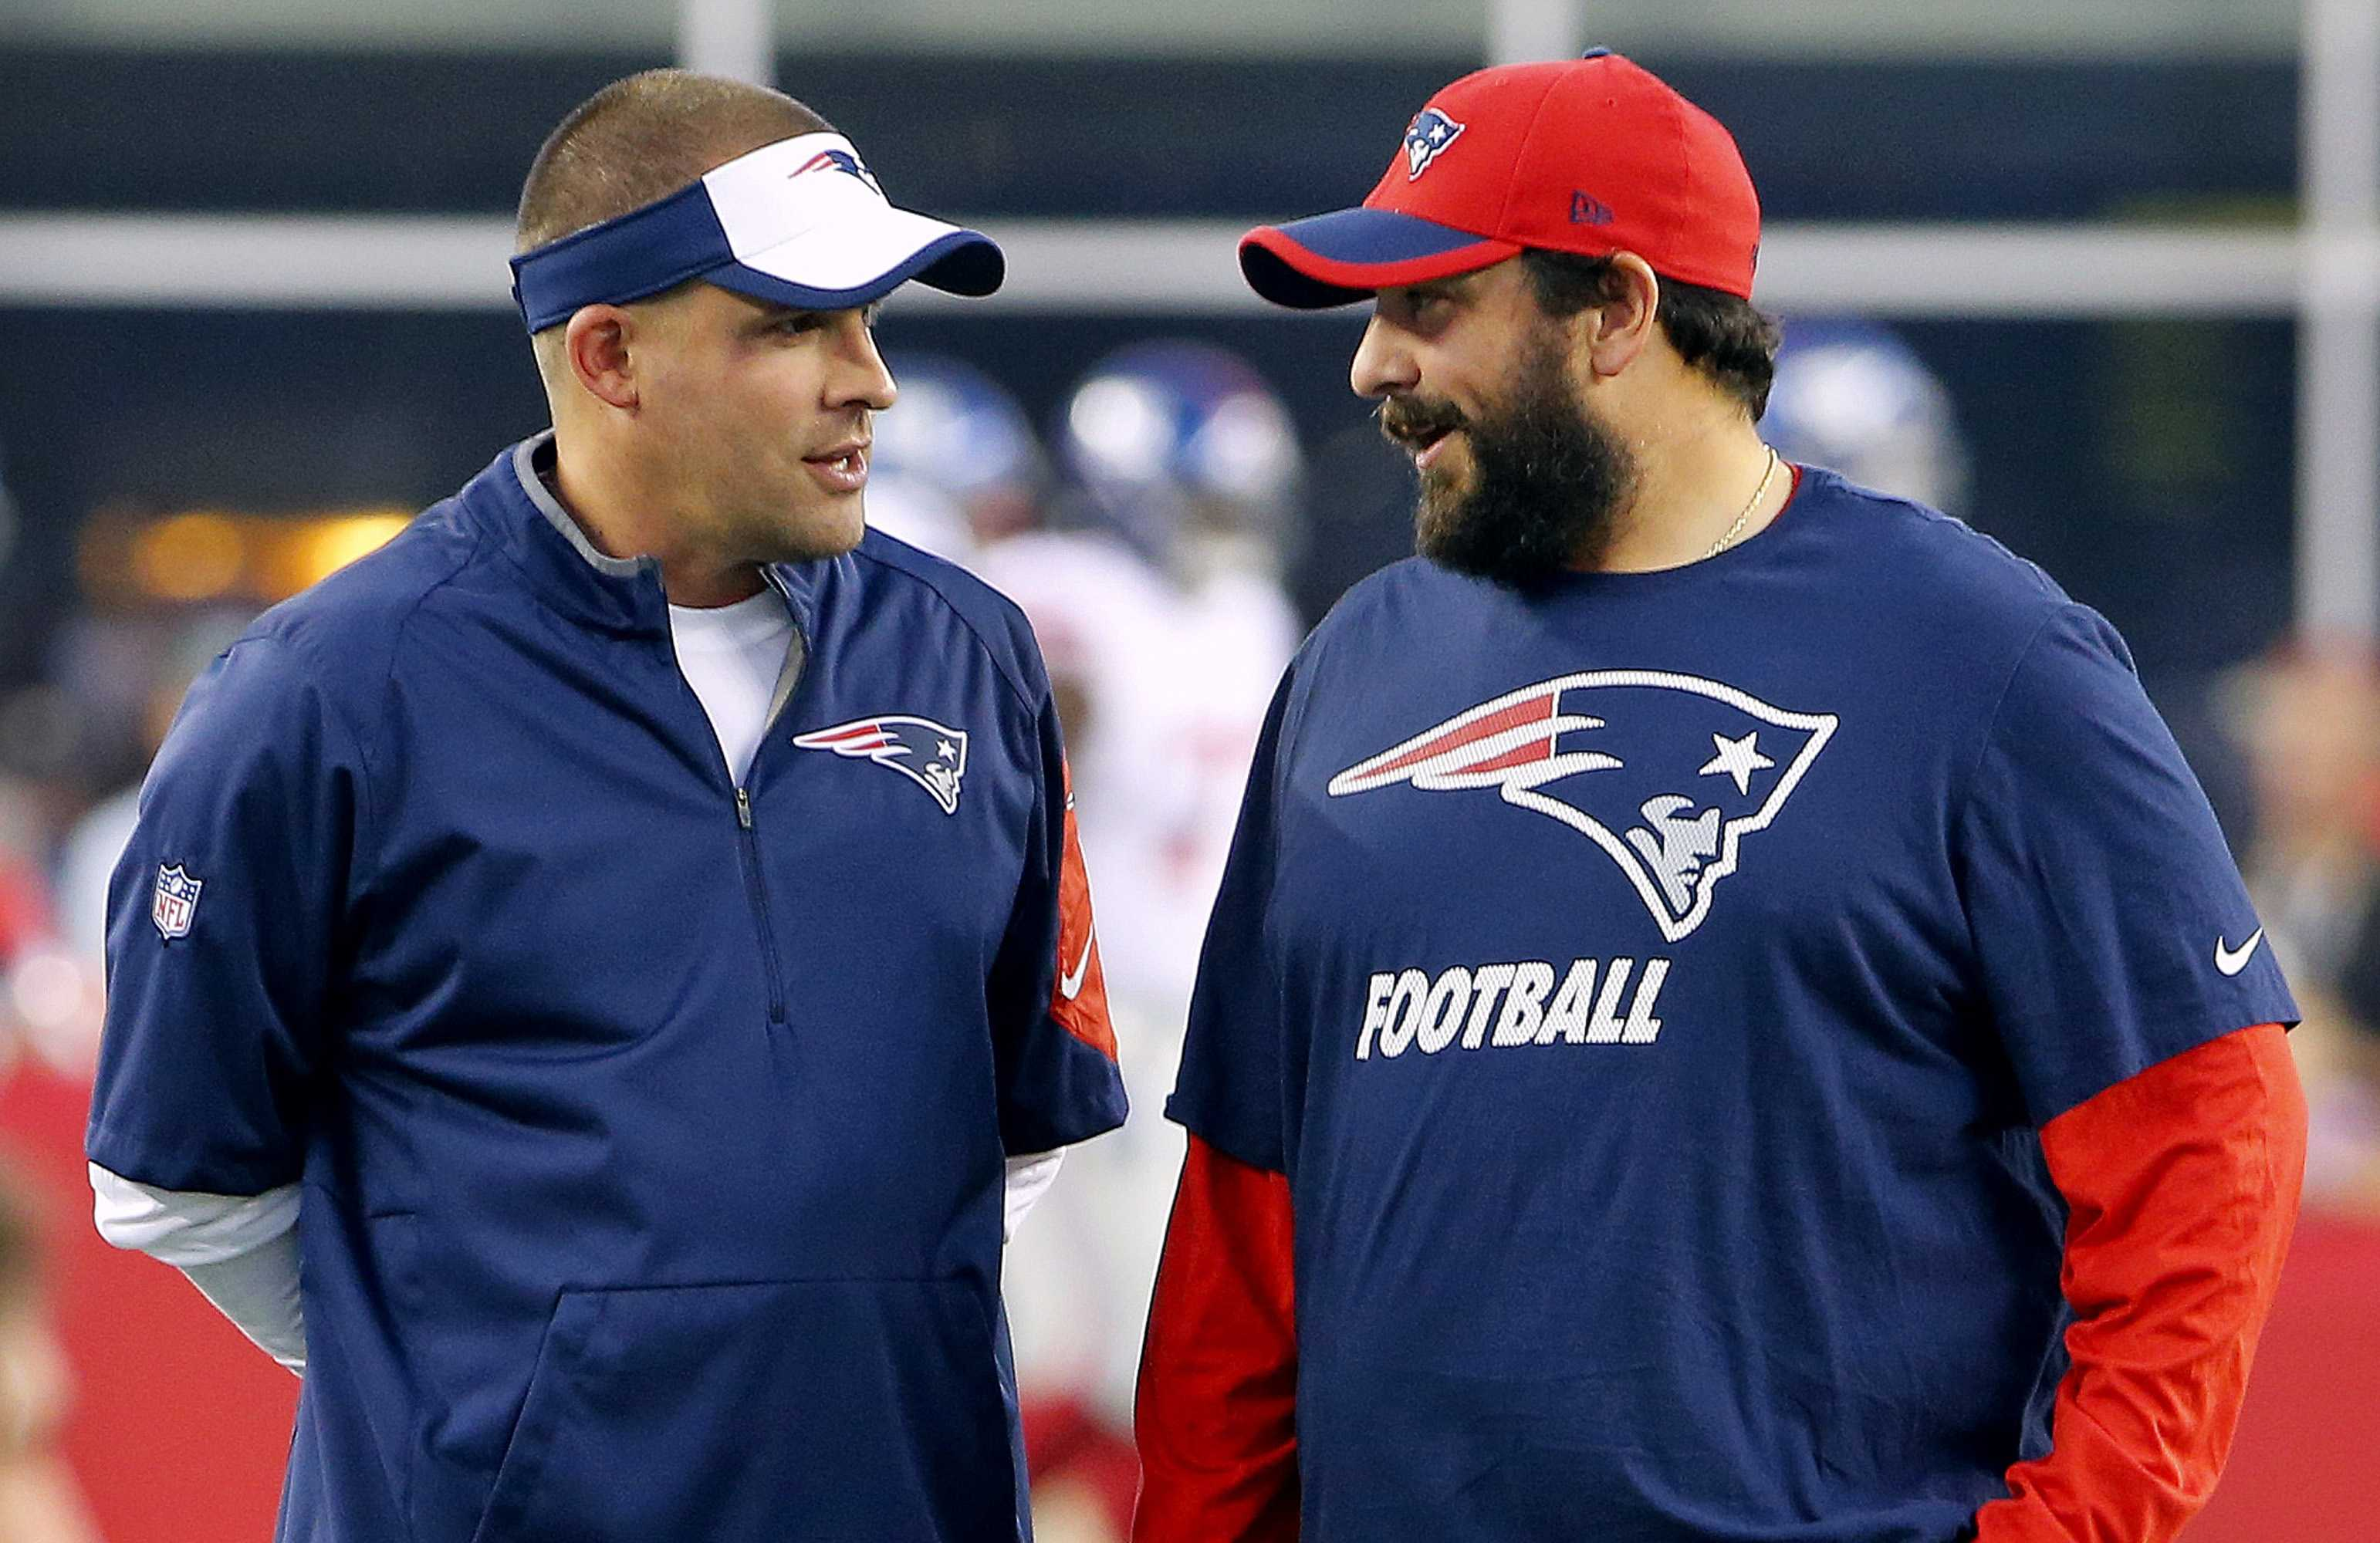 Colts Submit Request to Interview McDaniels, Others for HC job